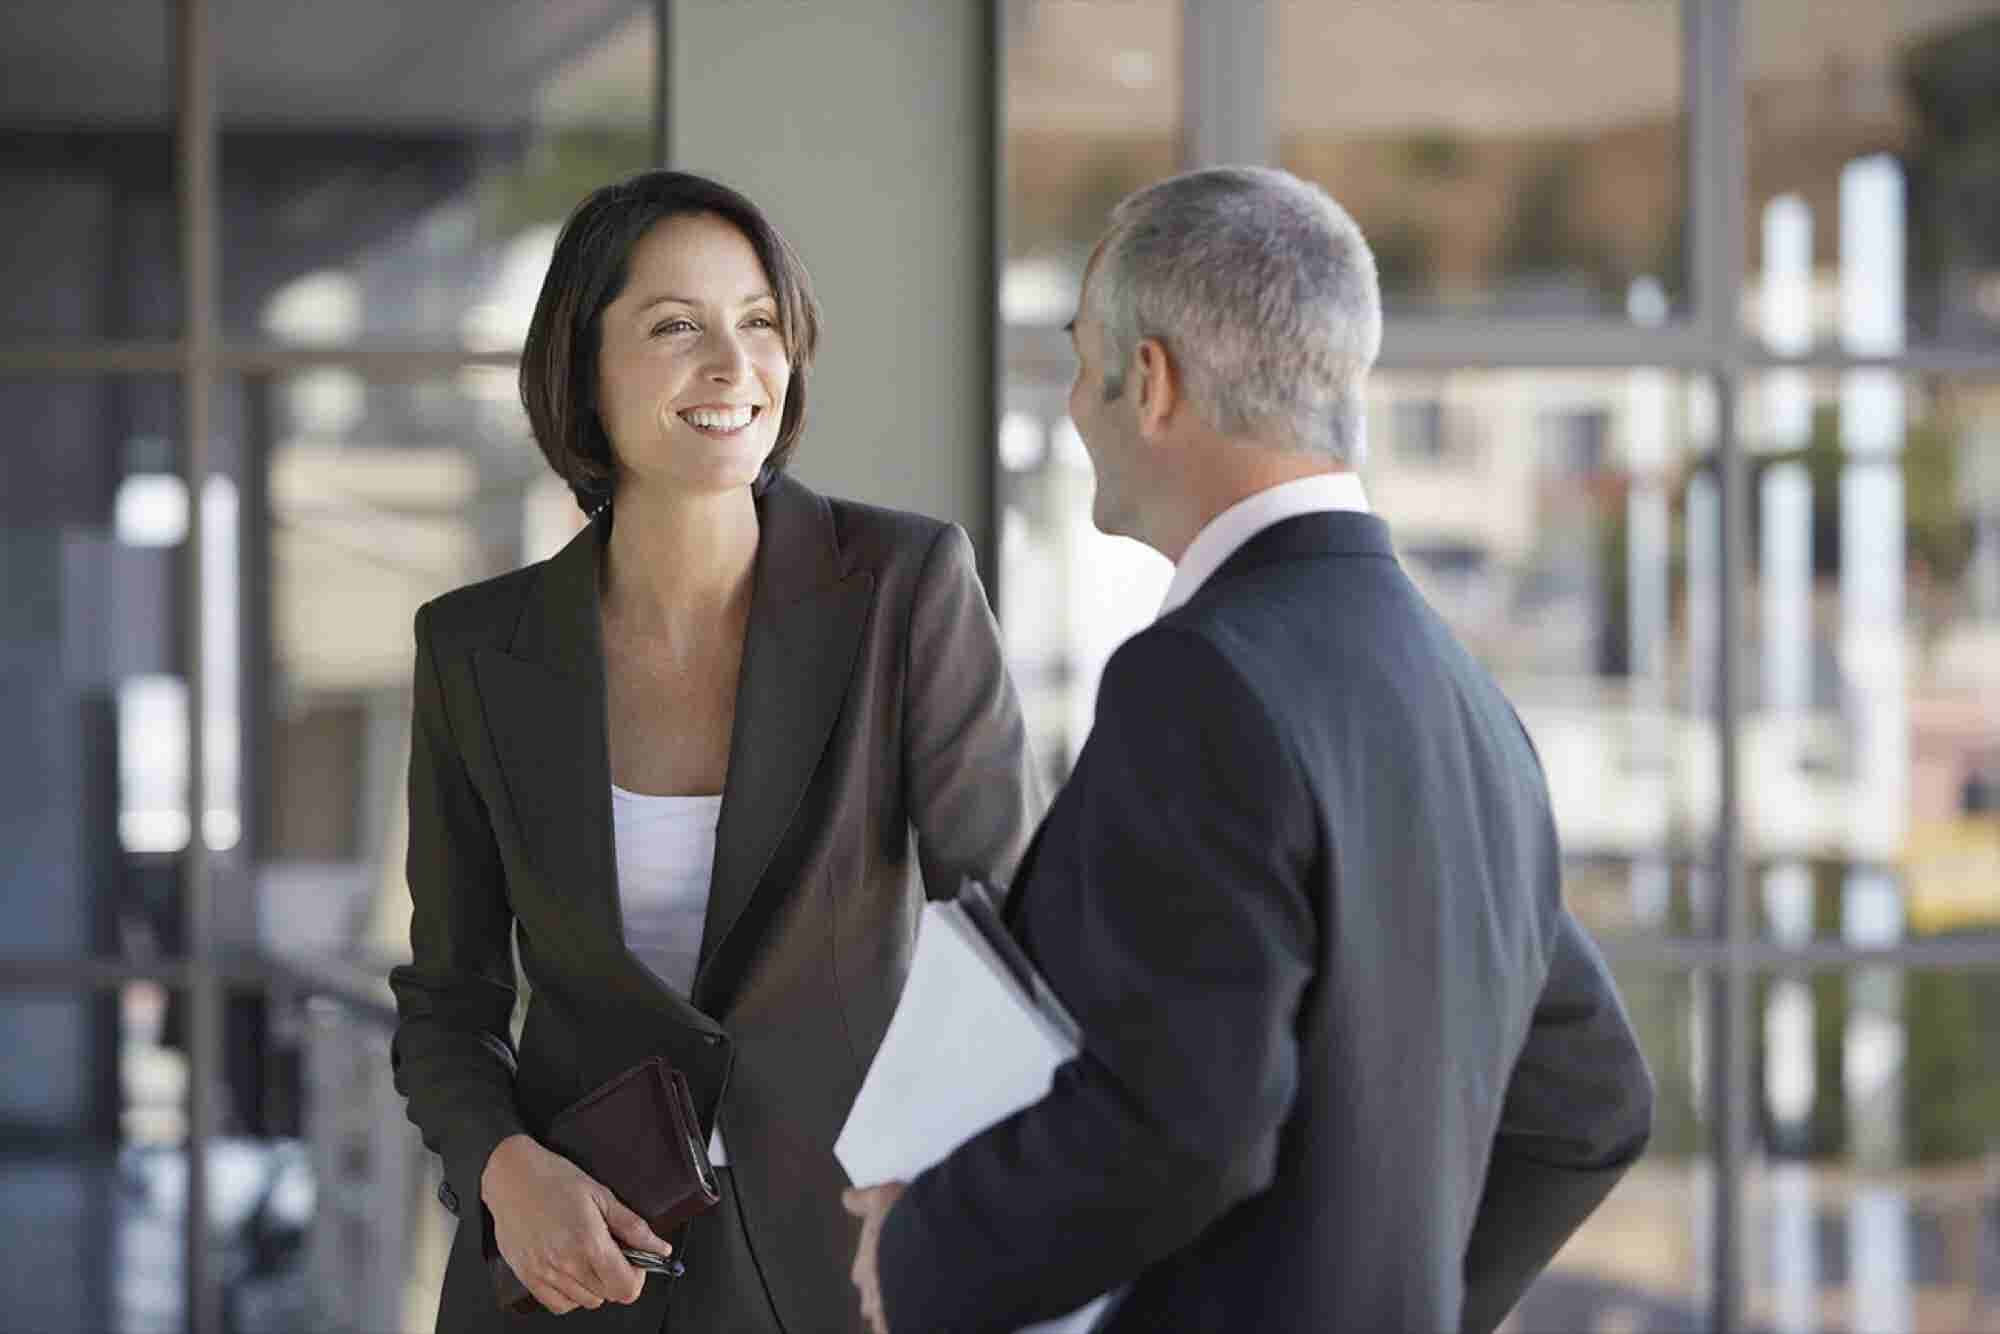 Is Franchising a Fit for You?